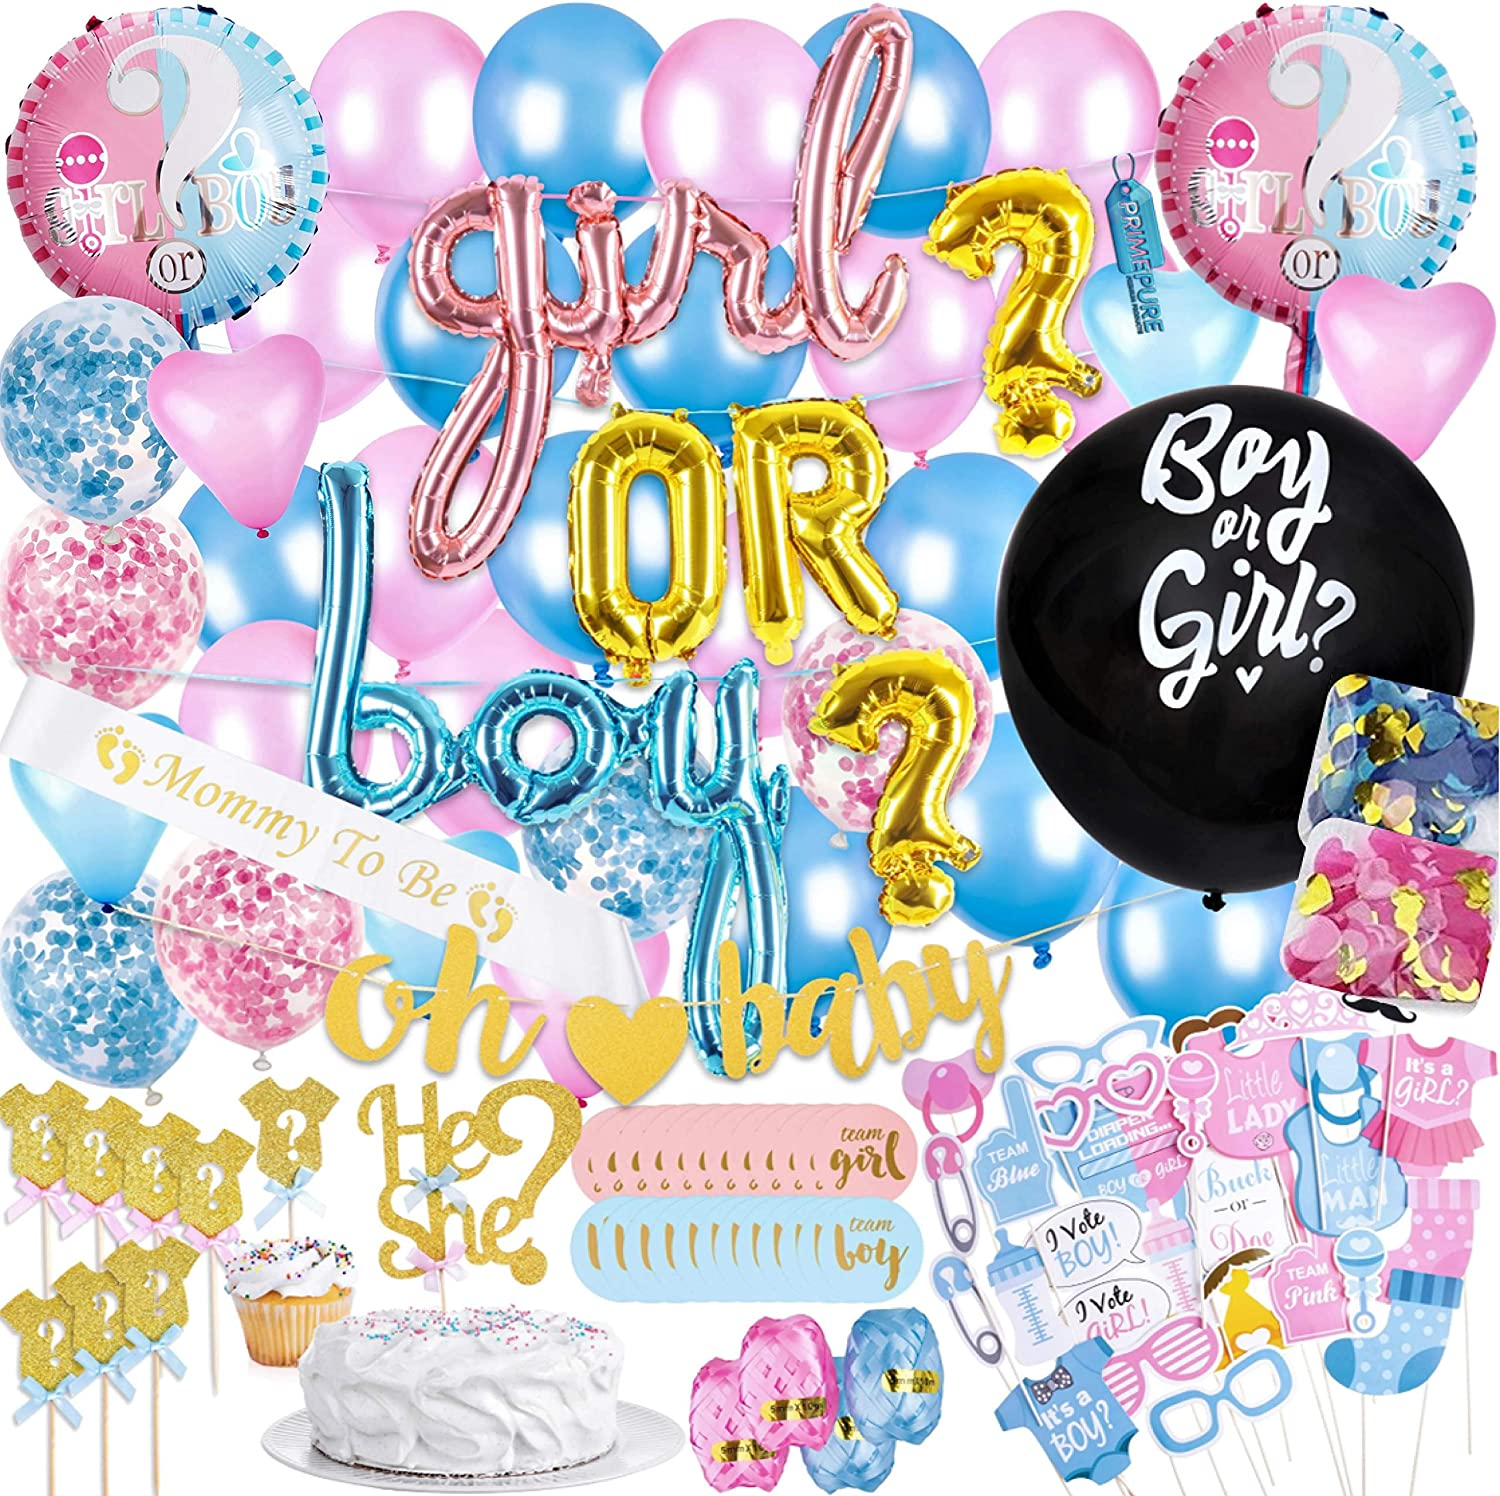 Baby Gender Reveal Party Supplies & Decorations - (111 Piece Premium Kit) Pink and Blue Balloons, 36 inch Gender Reveal Balloon, Boy or Girl Banner | Great with Smoke Bombs & Confetti Cannon